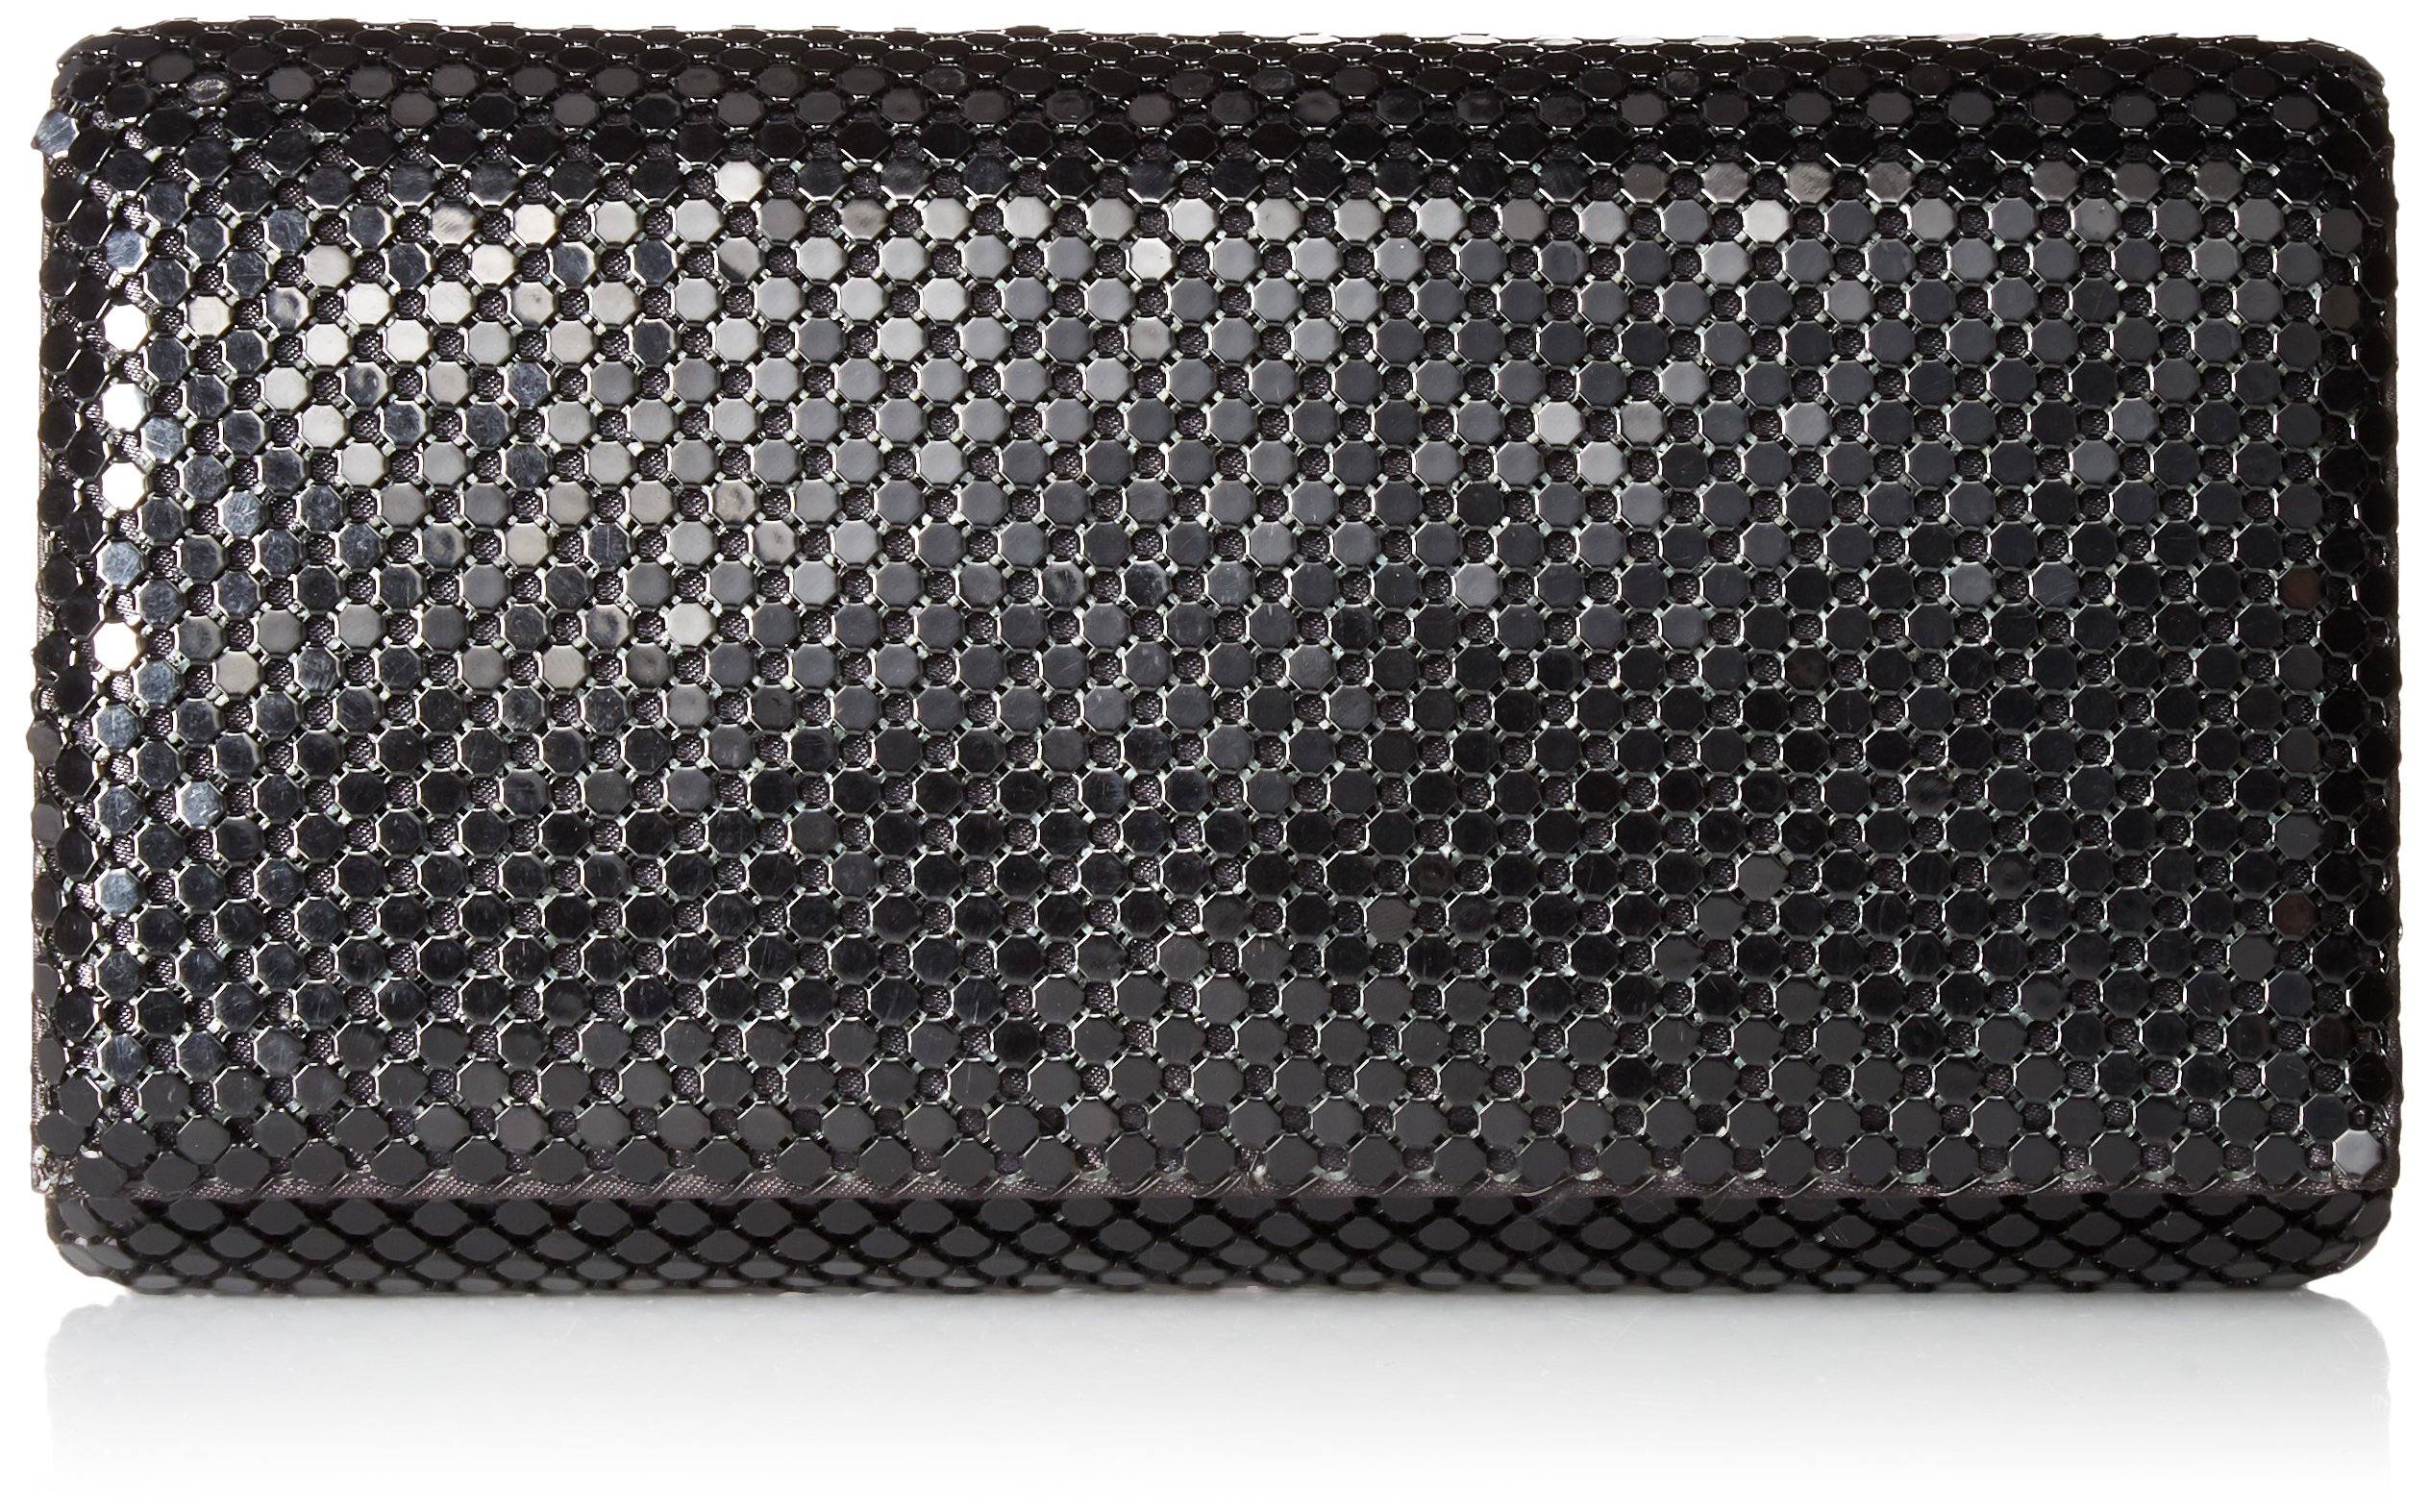 Jessica McClintock Womens Metal Mesh Roll Evening Bag Clutch Purse (Shoulder Chain Included 4.5'' x 7.5'' x 2'')